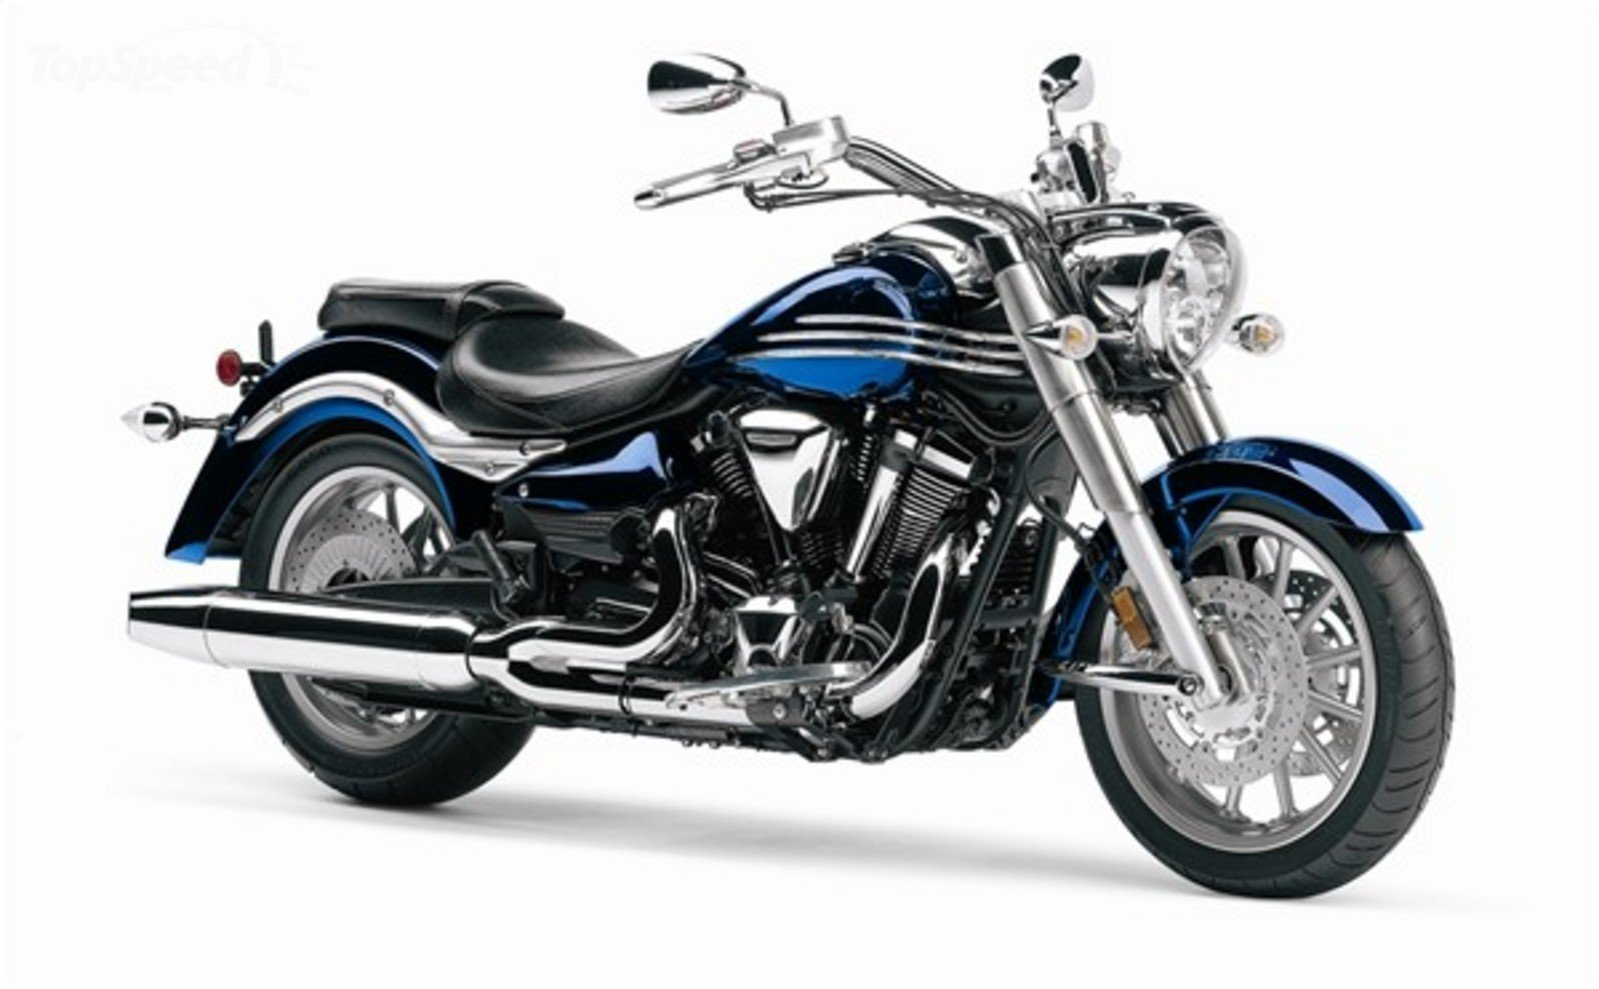 2007 yamaha roadliner review top speed for 2006 yamaha stratoliner review